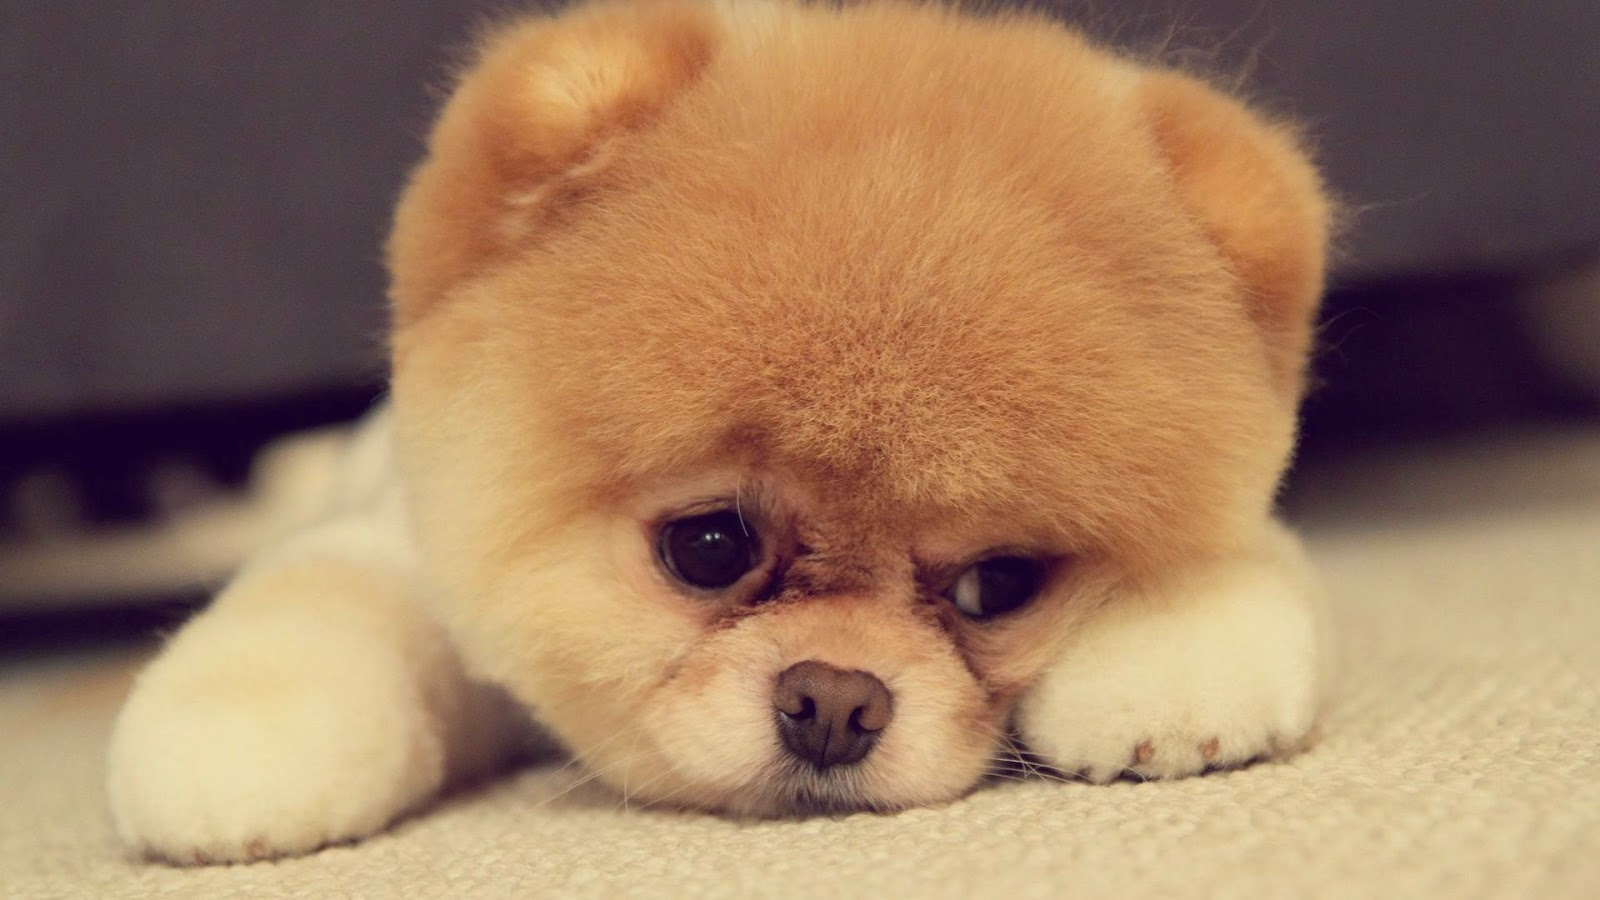 cute and Sad brown dog